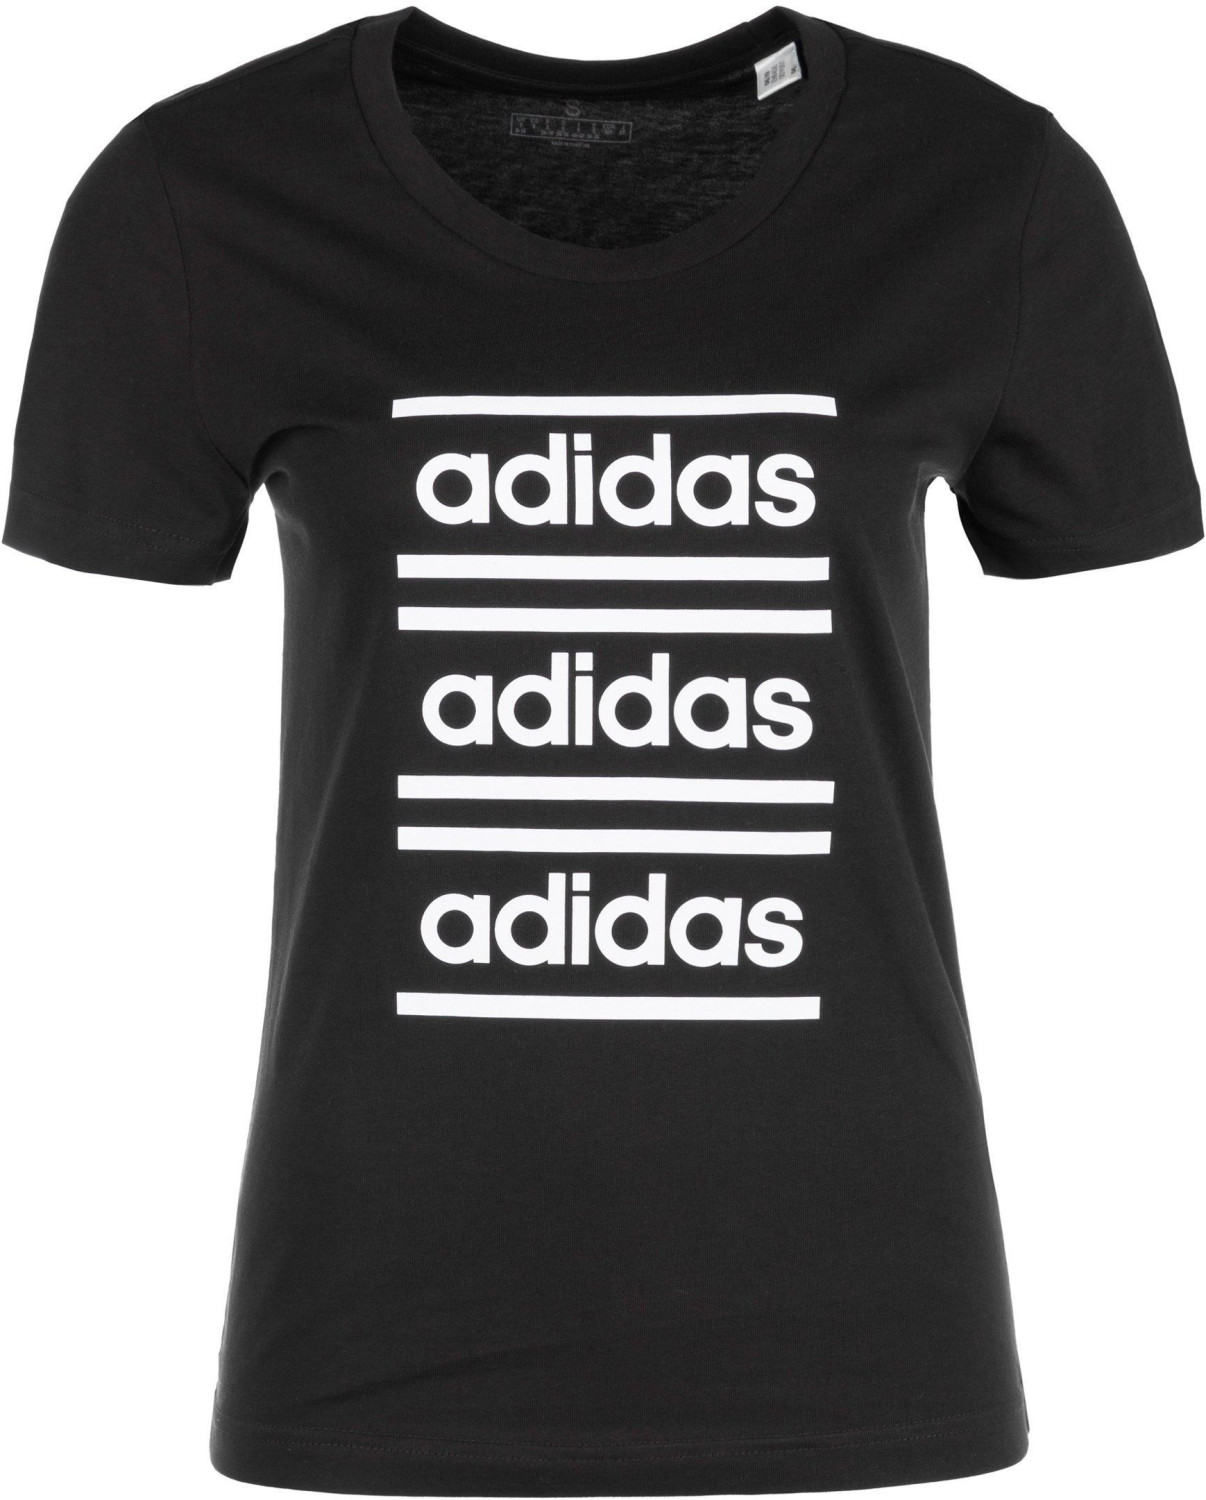 Image of Adidas Women Celebrate the 90s T-Shirt black